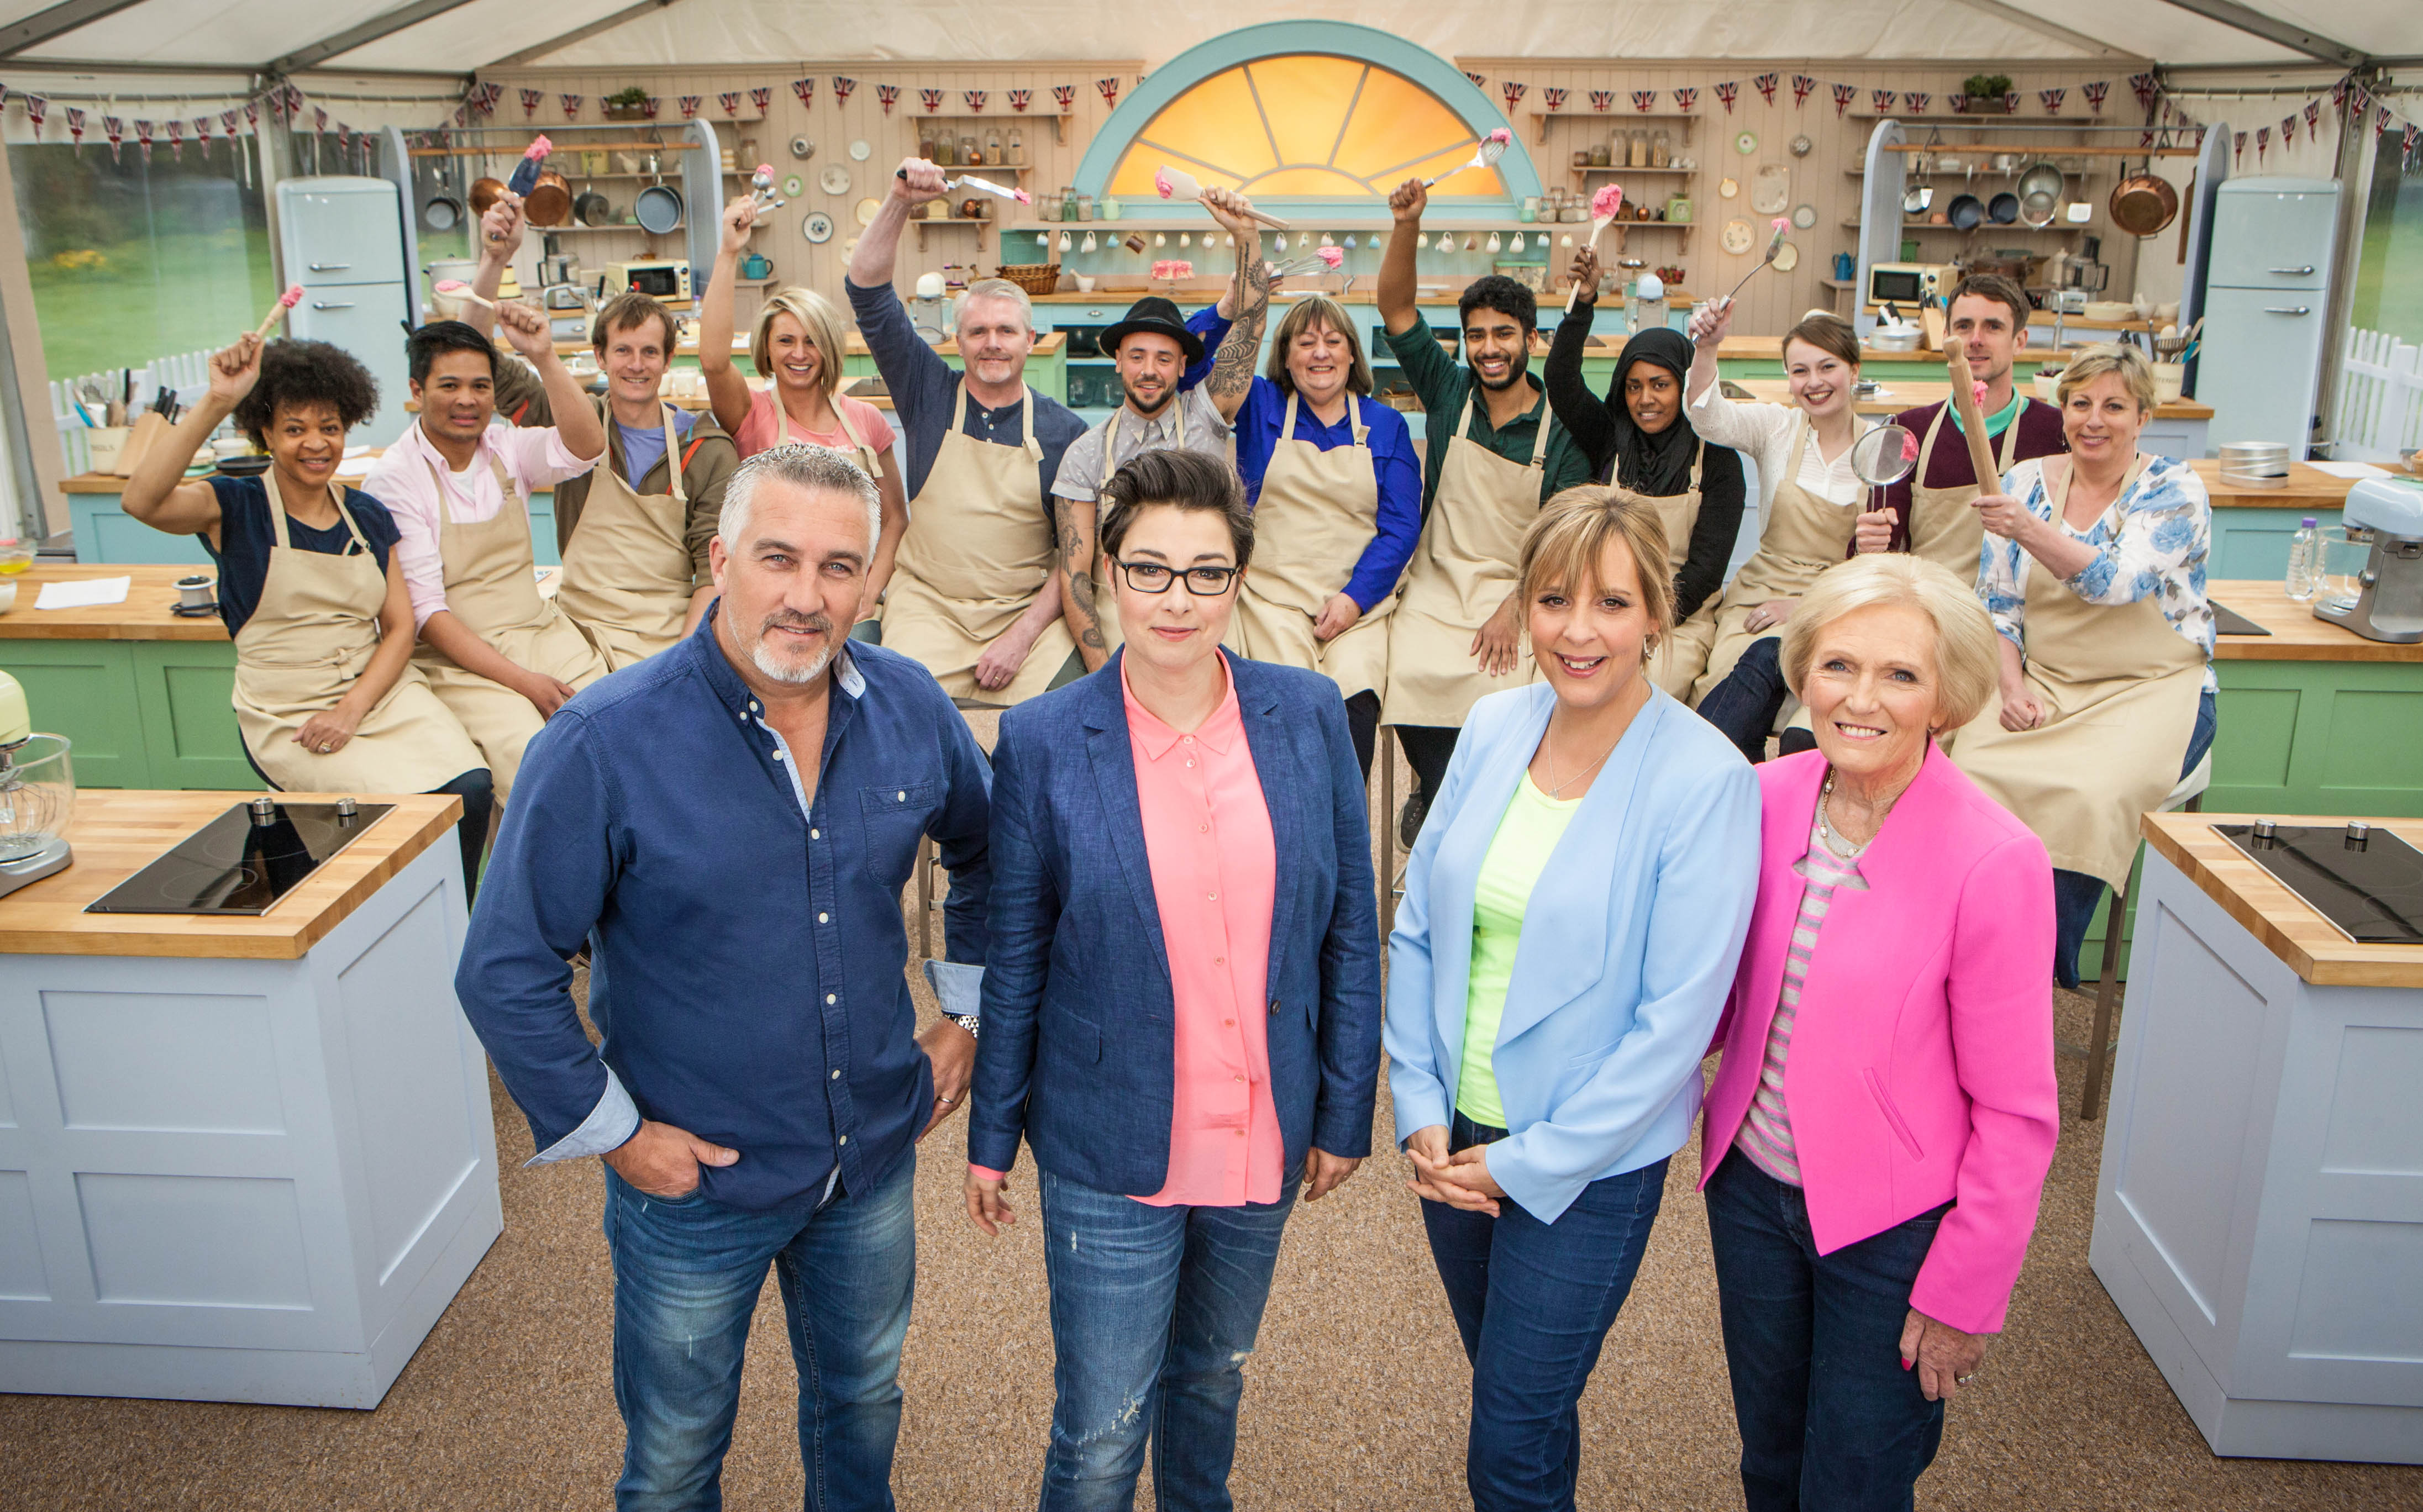 ITV snubbed Great British Bake Off deal as they knew they wouldn't get Mary Berry and Paul Hollywood